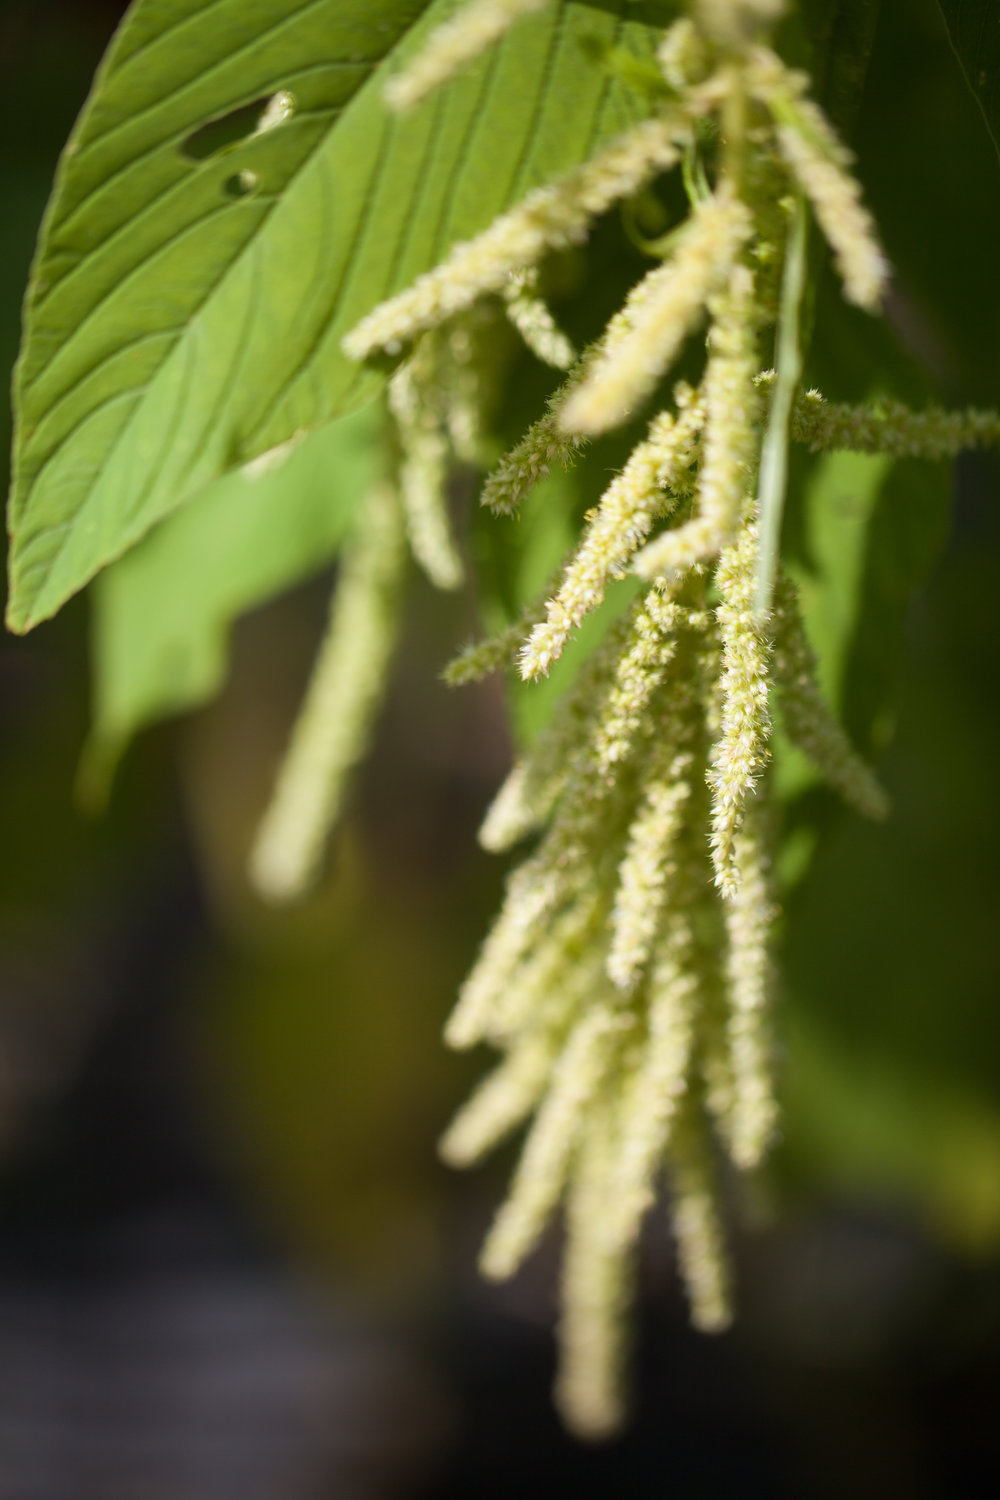 Green tassle amaranth